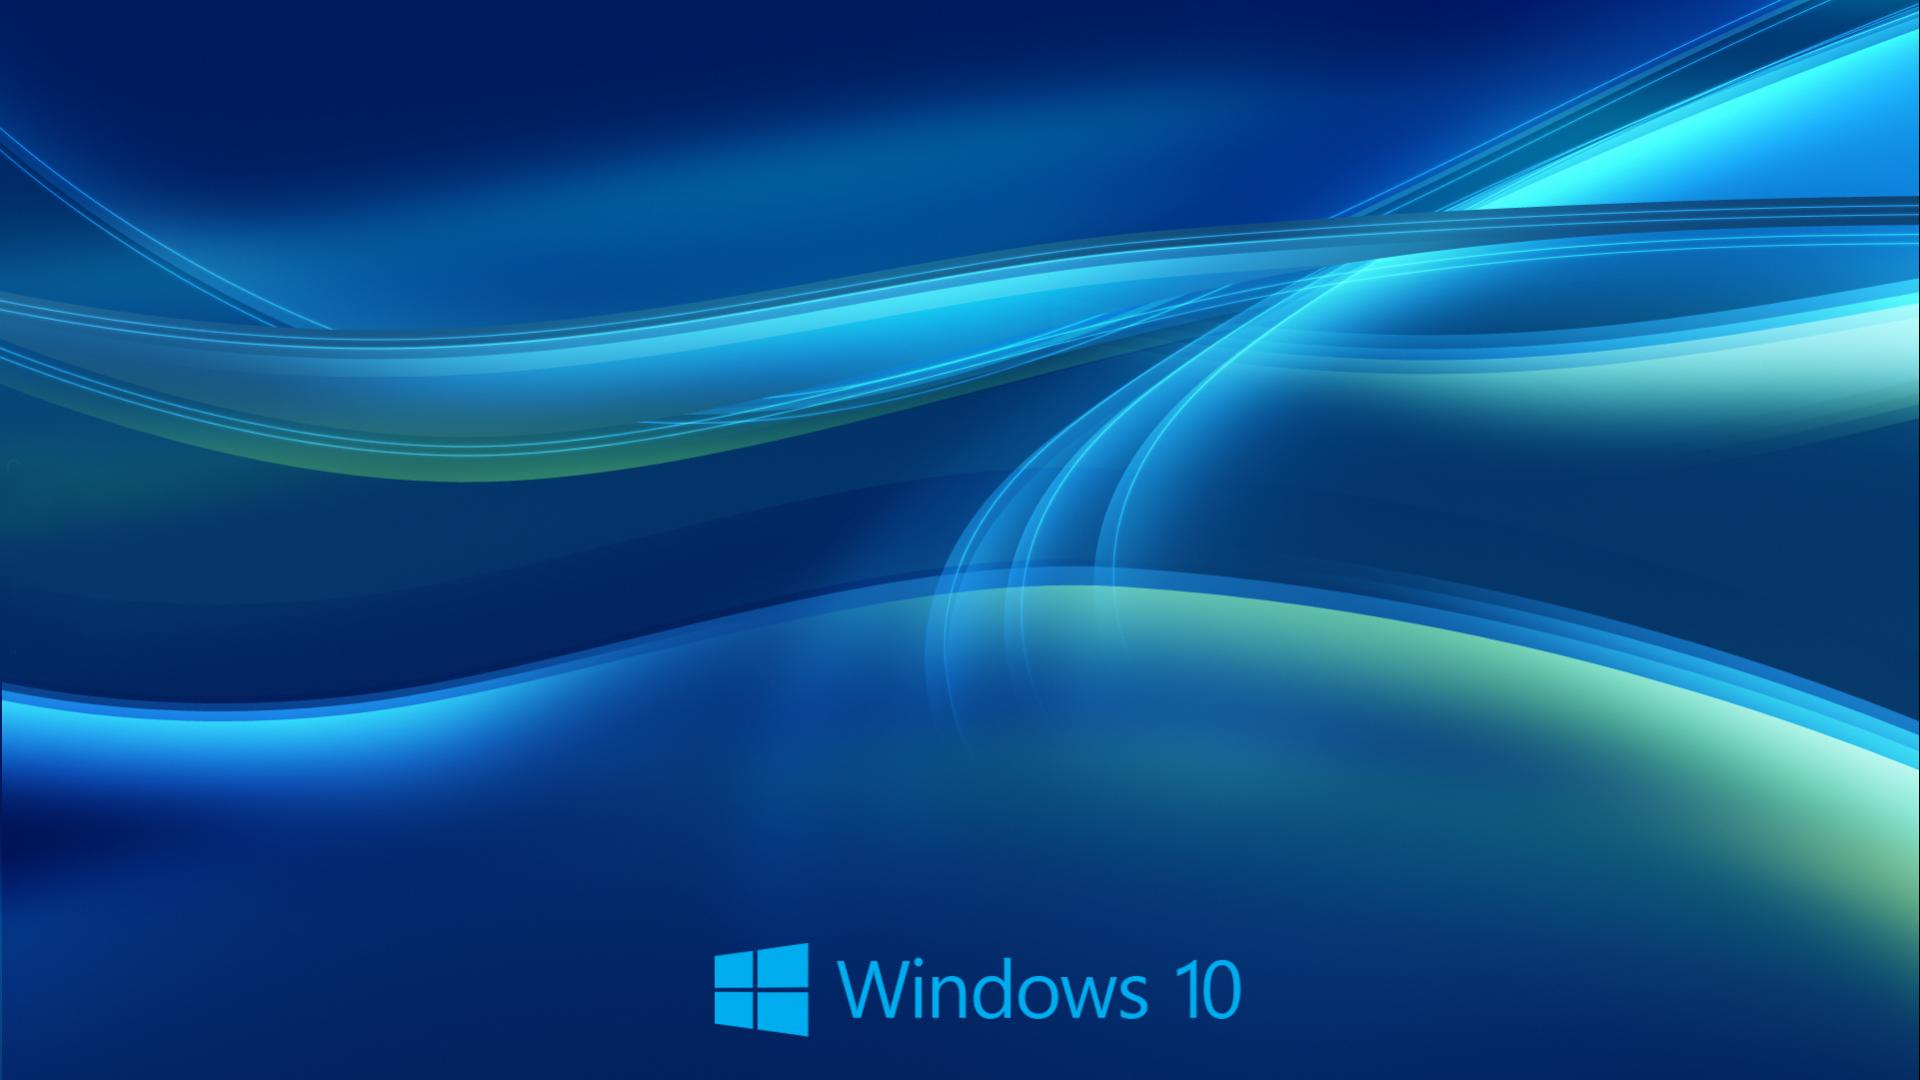 Windows 10 Logo Wallpaper 1920x1080 Wallpapersafari